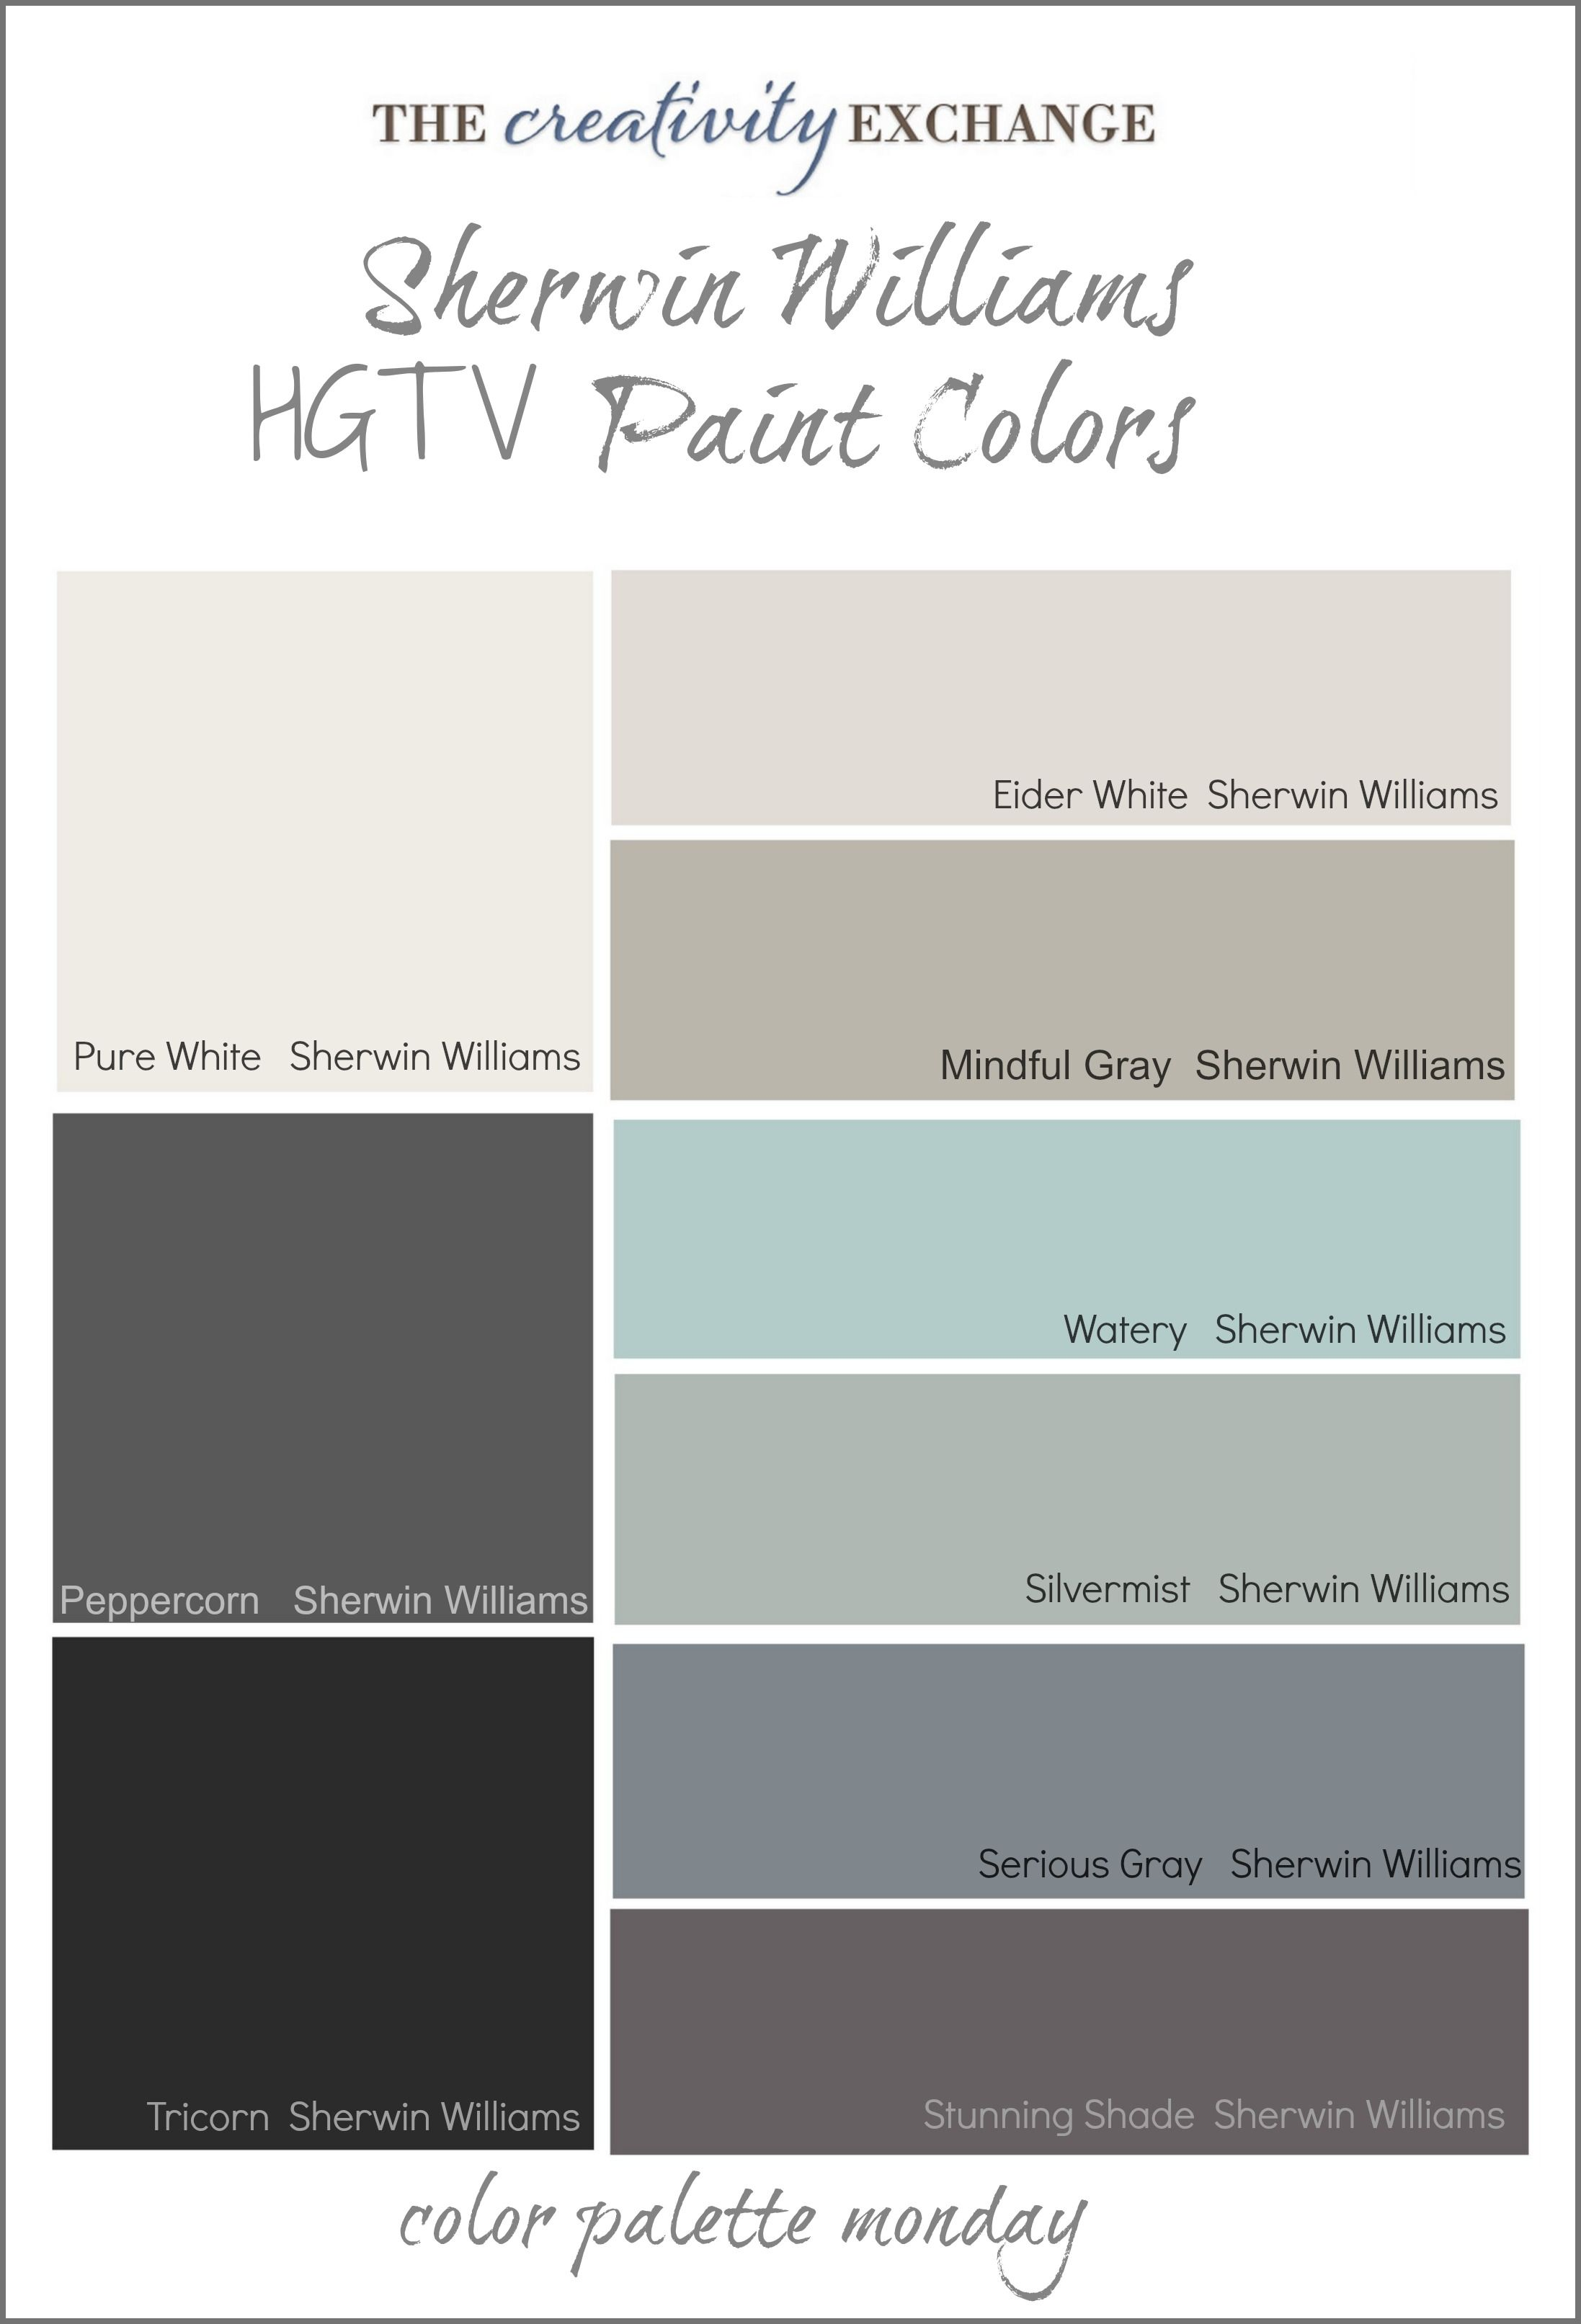 Hgtv Paint Colors From Sherwin Williams Color Palette Monday This Looks Like The In My House With Diffe Names Seriously That S Crazy